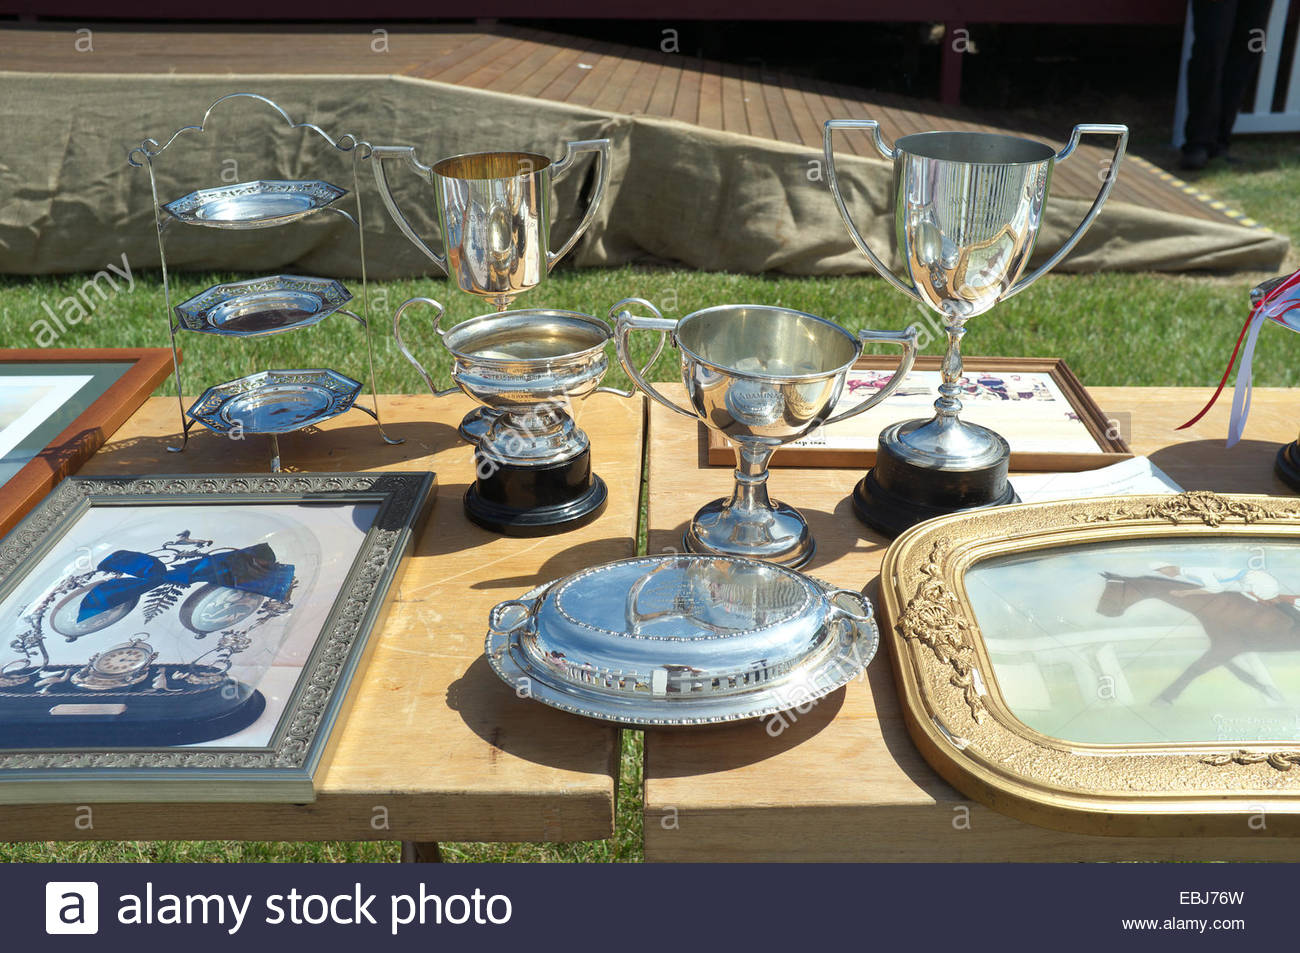 Trophy silverware at the Adaminaby Races (horse racing), Snowy Mountains, NSW, Australia. - Stock Image